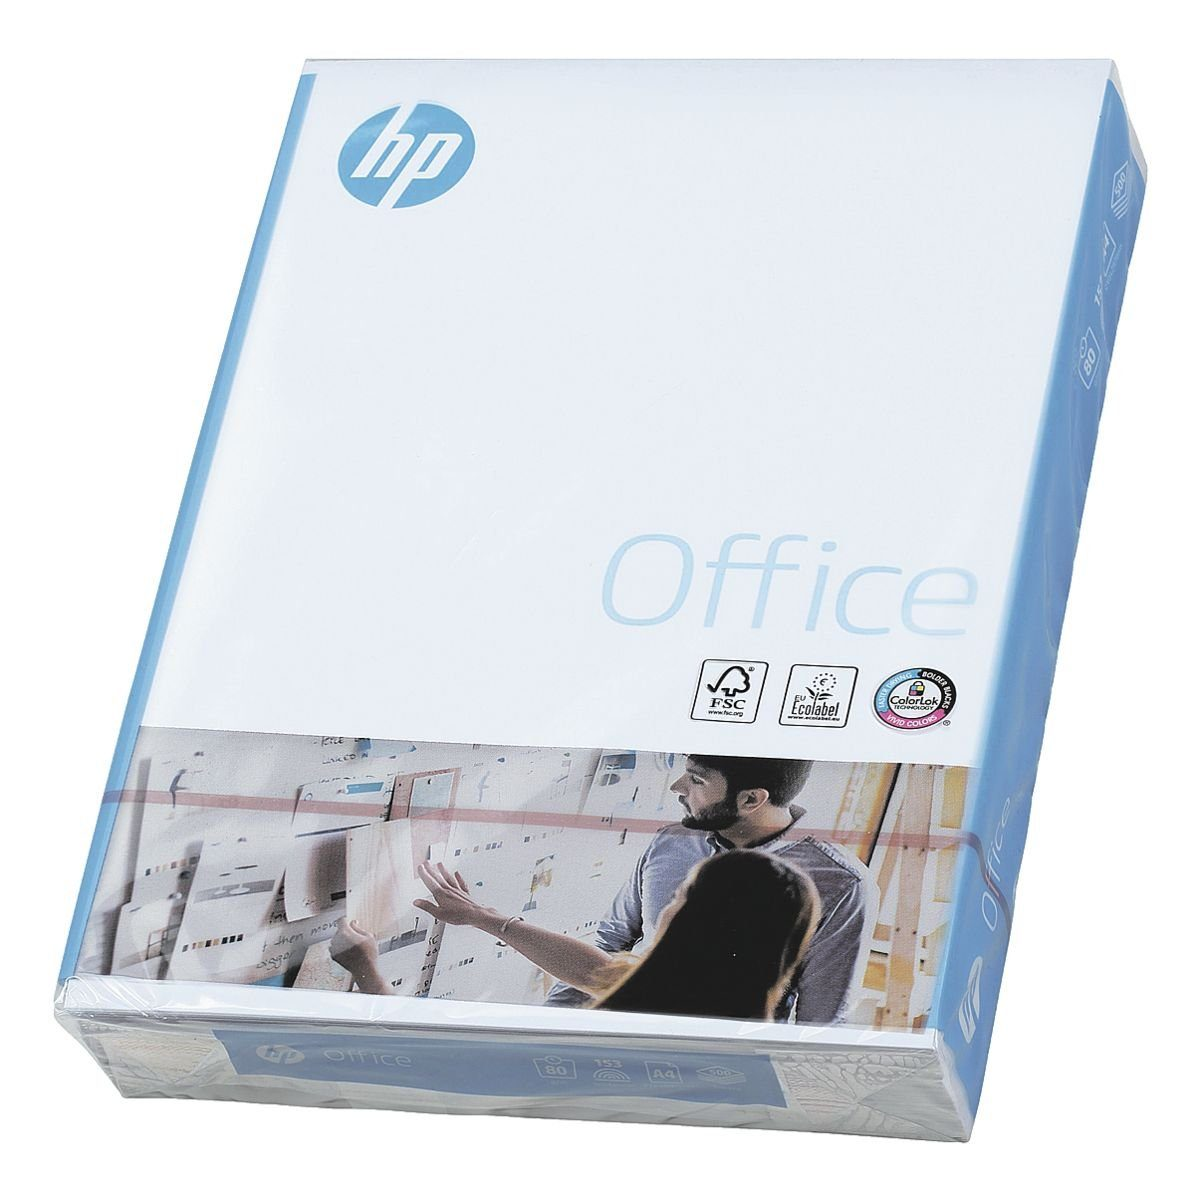 HP Kopierpapier »HP Office CHP110«